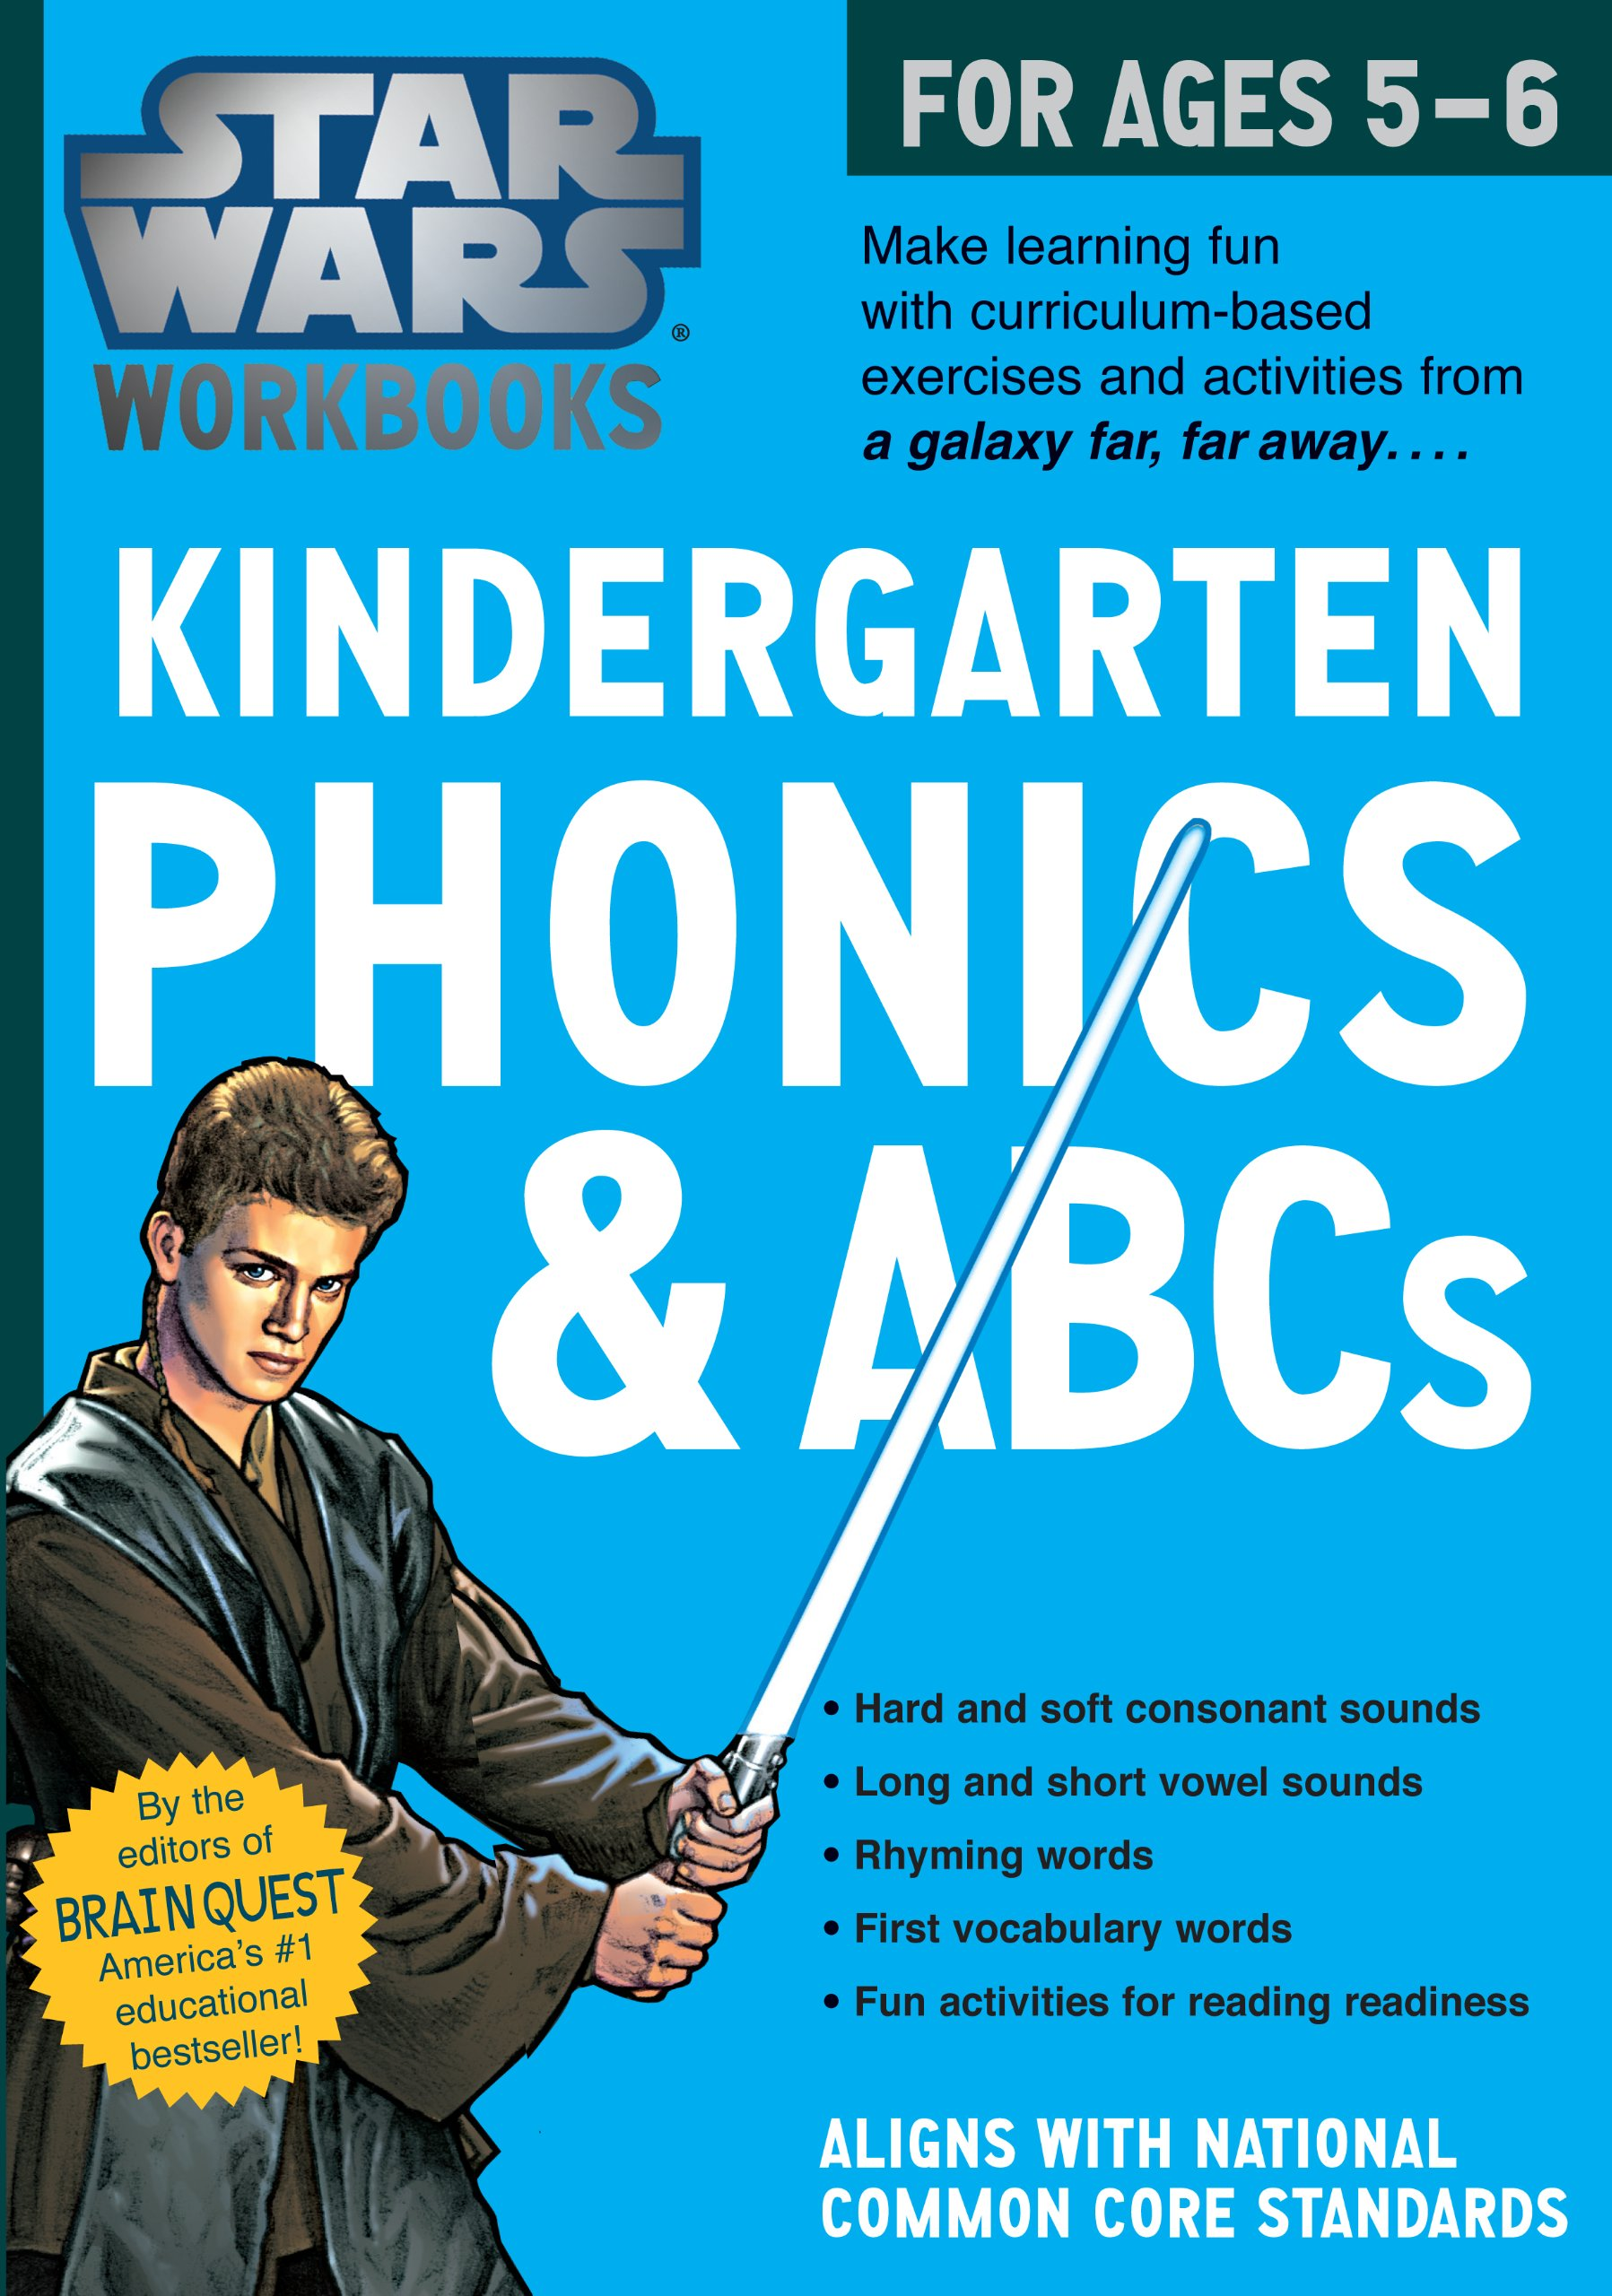 Star Wars Workbooks: Kindergarten Phonics and ABCs